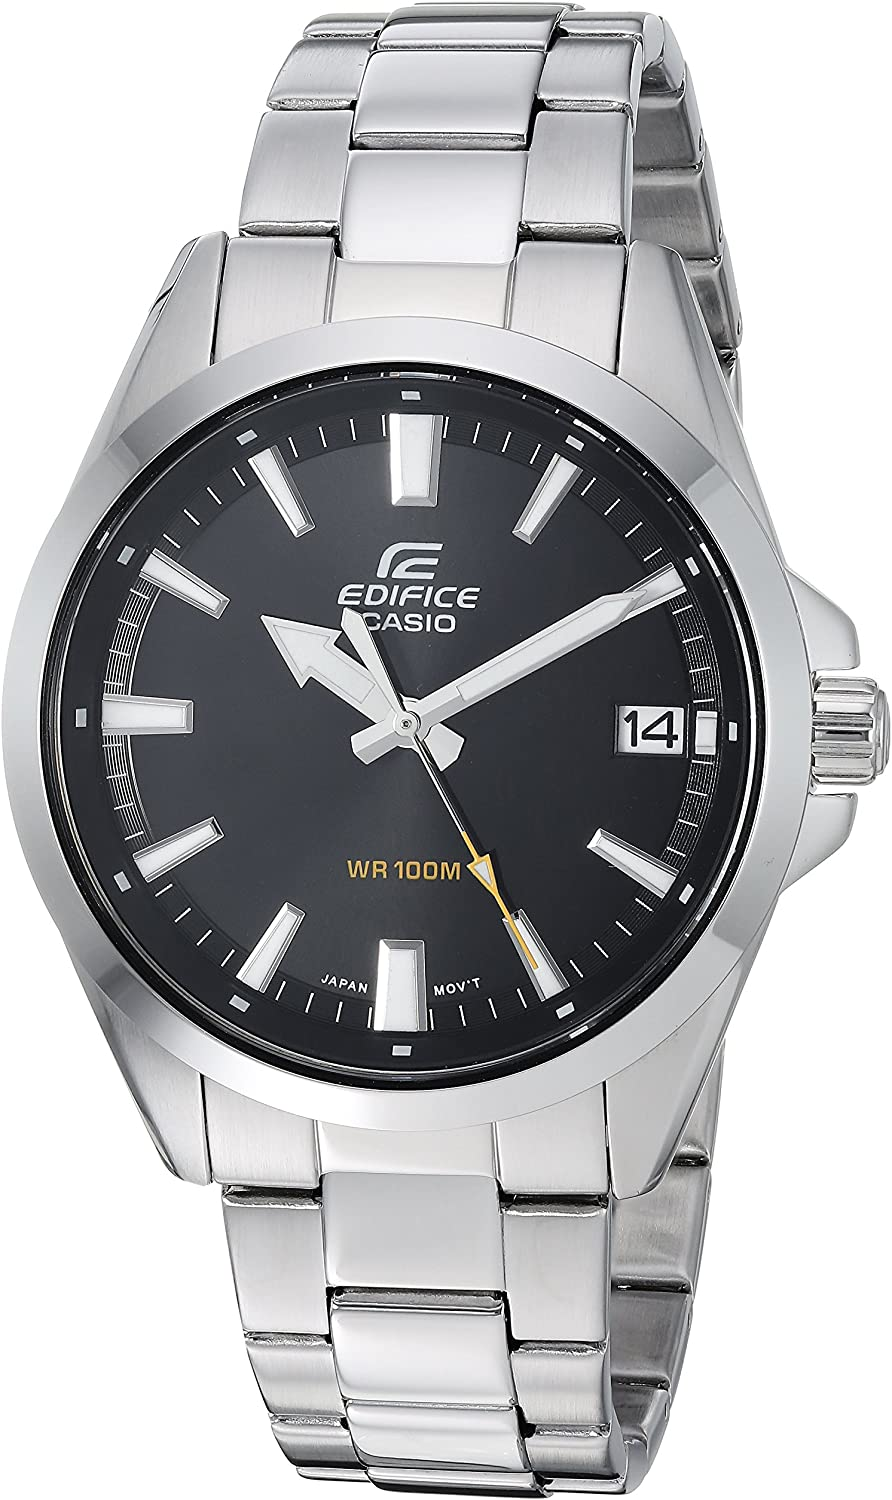 Casio Men's Edifice Quartz Watch with Stainless-Steel Strap, Silver, 19.7 (Model: EFV-100D-1AVCR)